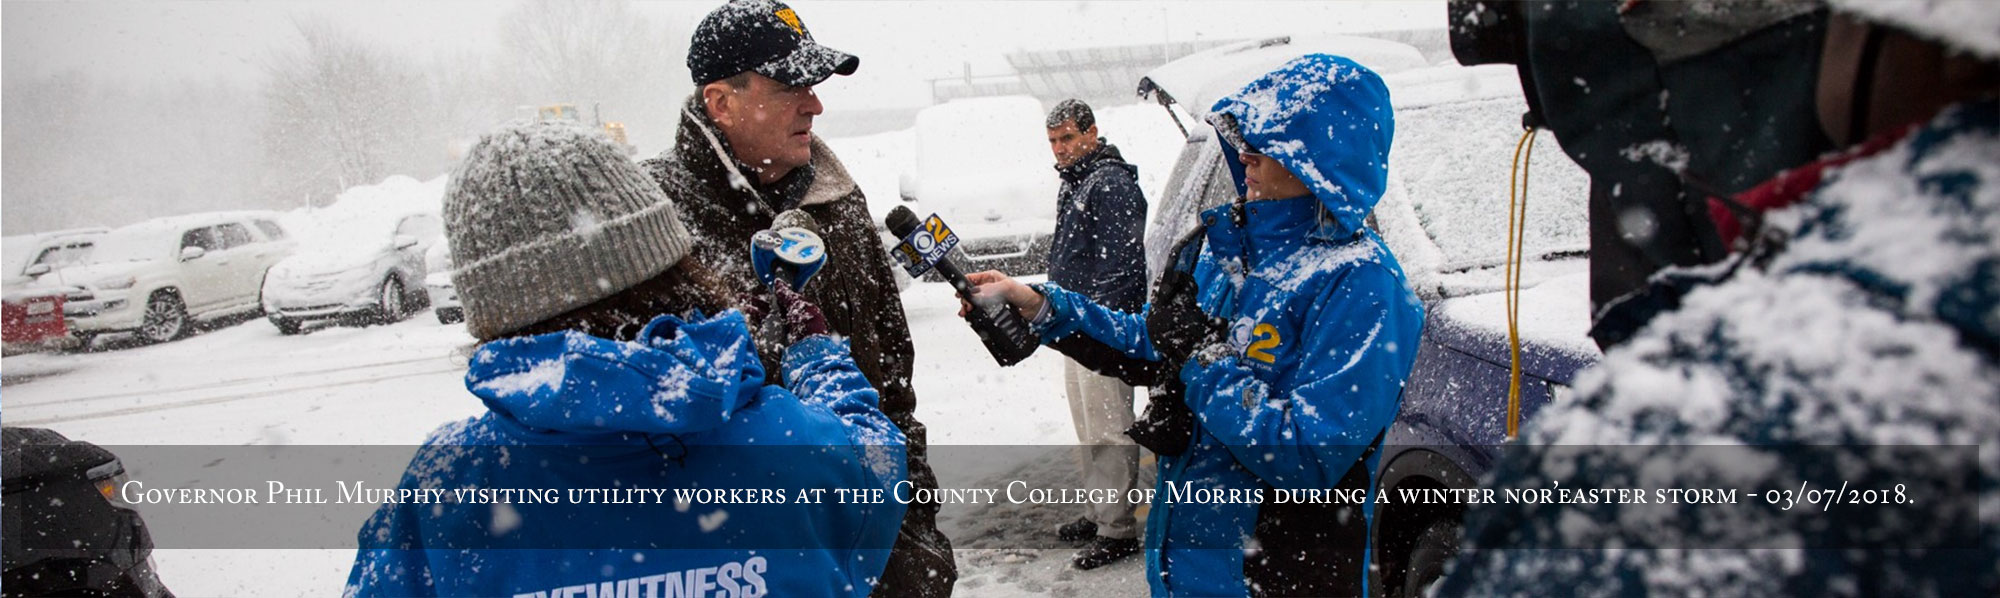 Governor Phil Murphy conducts an interview after visiting utility workers at the County College of Morris during a winter nor'easter storm on Wednesday, March 7, 2018